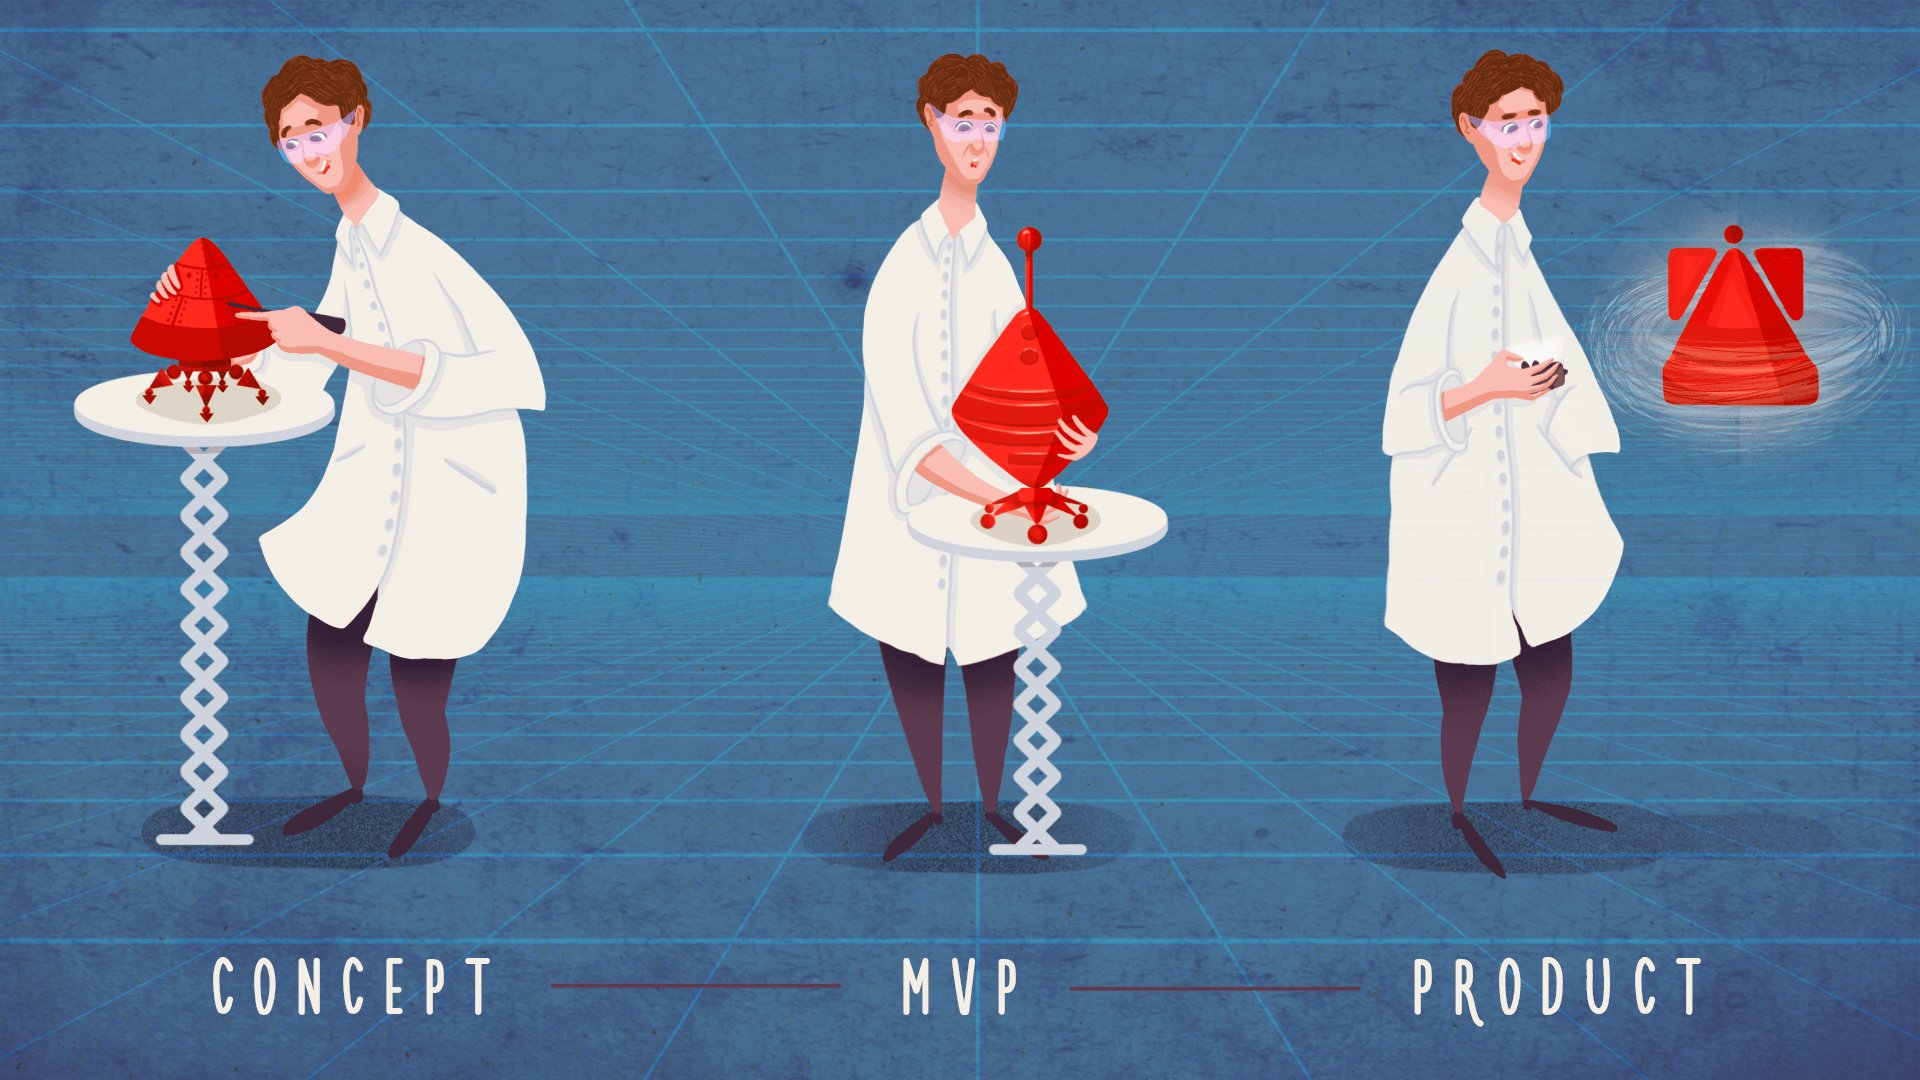 How Do You Build an MVP Fast As a Non-Technical Founder